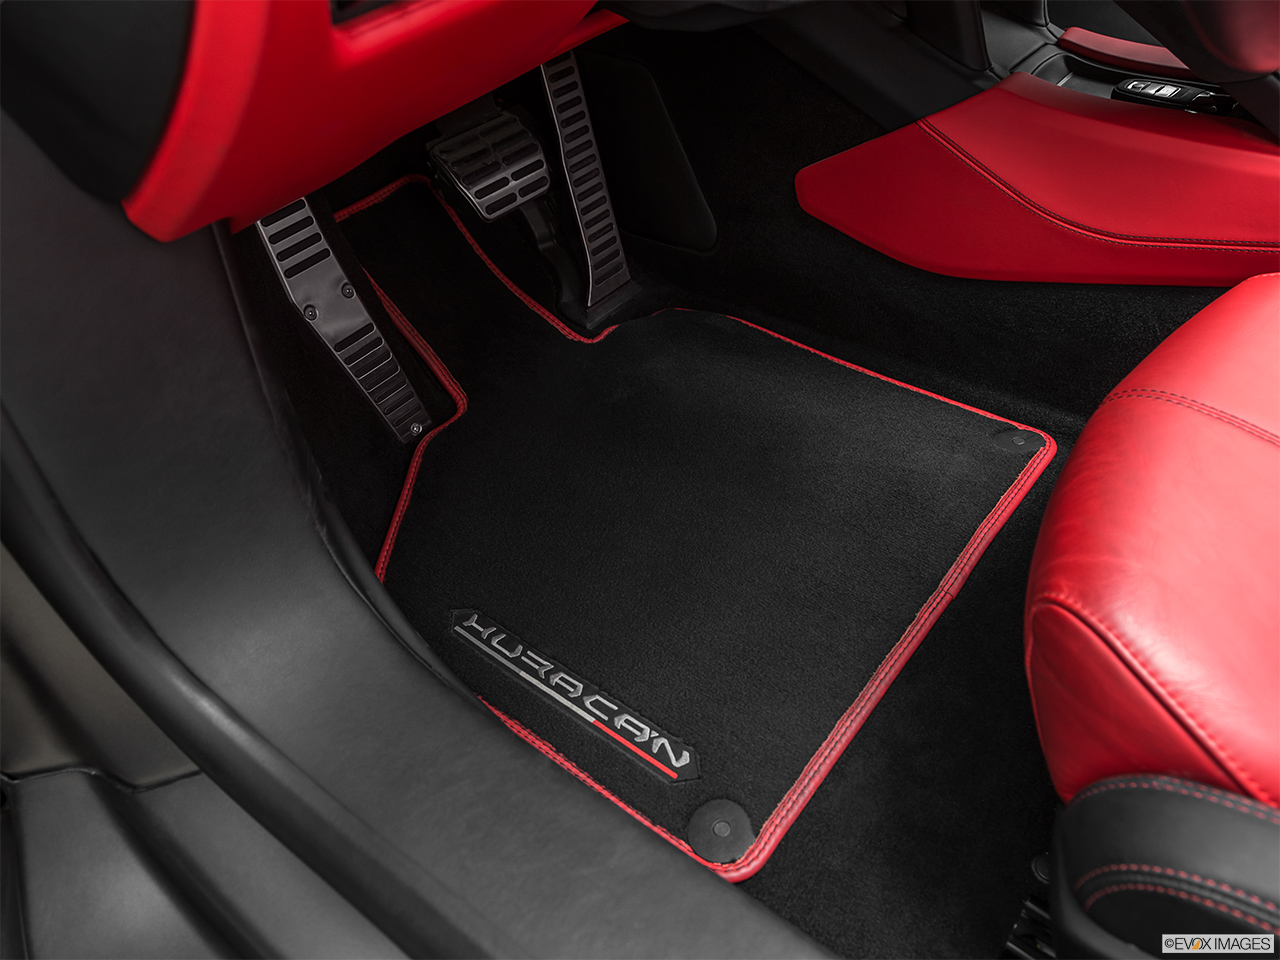 2019 Lamborghini Huracan Spyder LP580-2S Driver's floor mat and pedals. Mid-seat level from outside looking in.